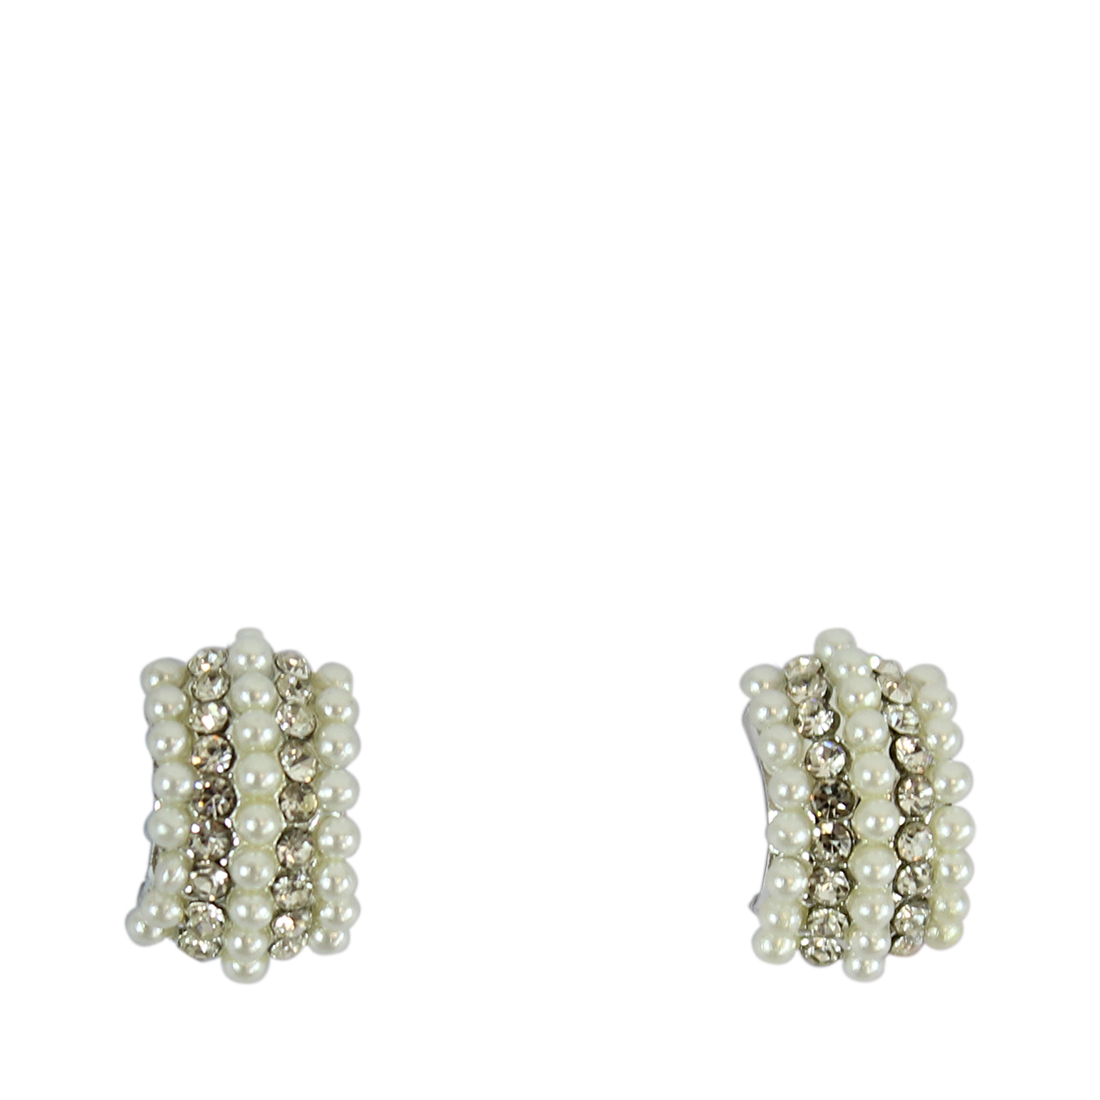 Bended square style earrings with pearls and tiny diamonds